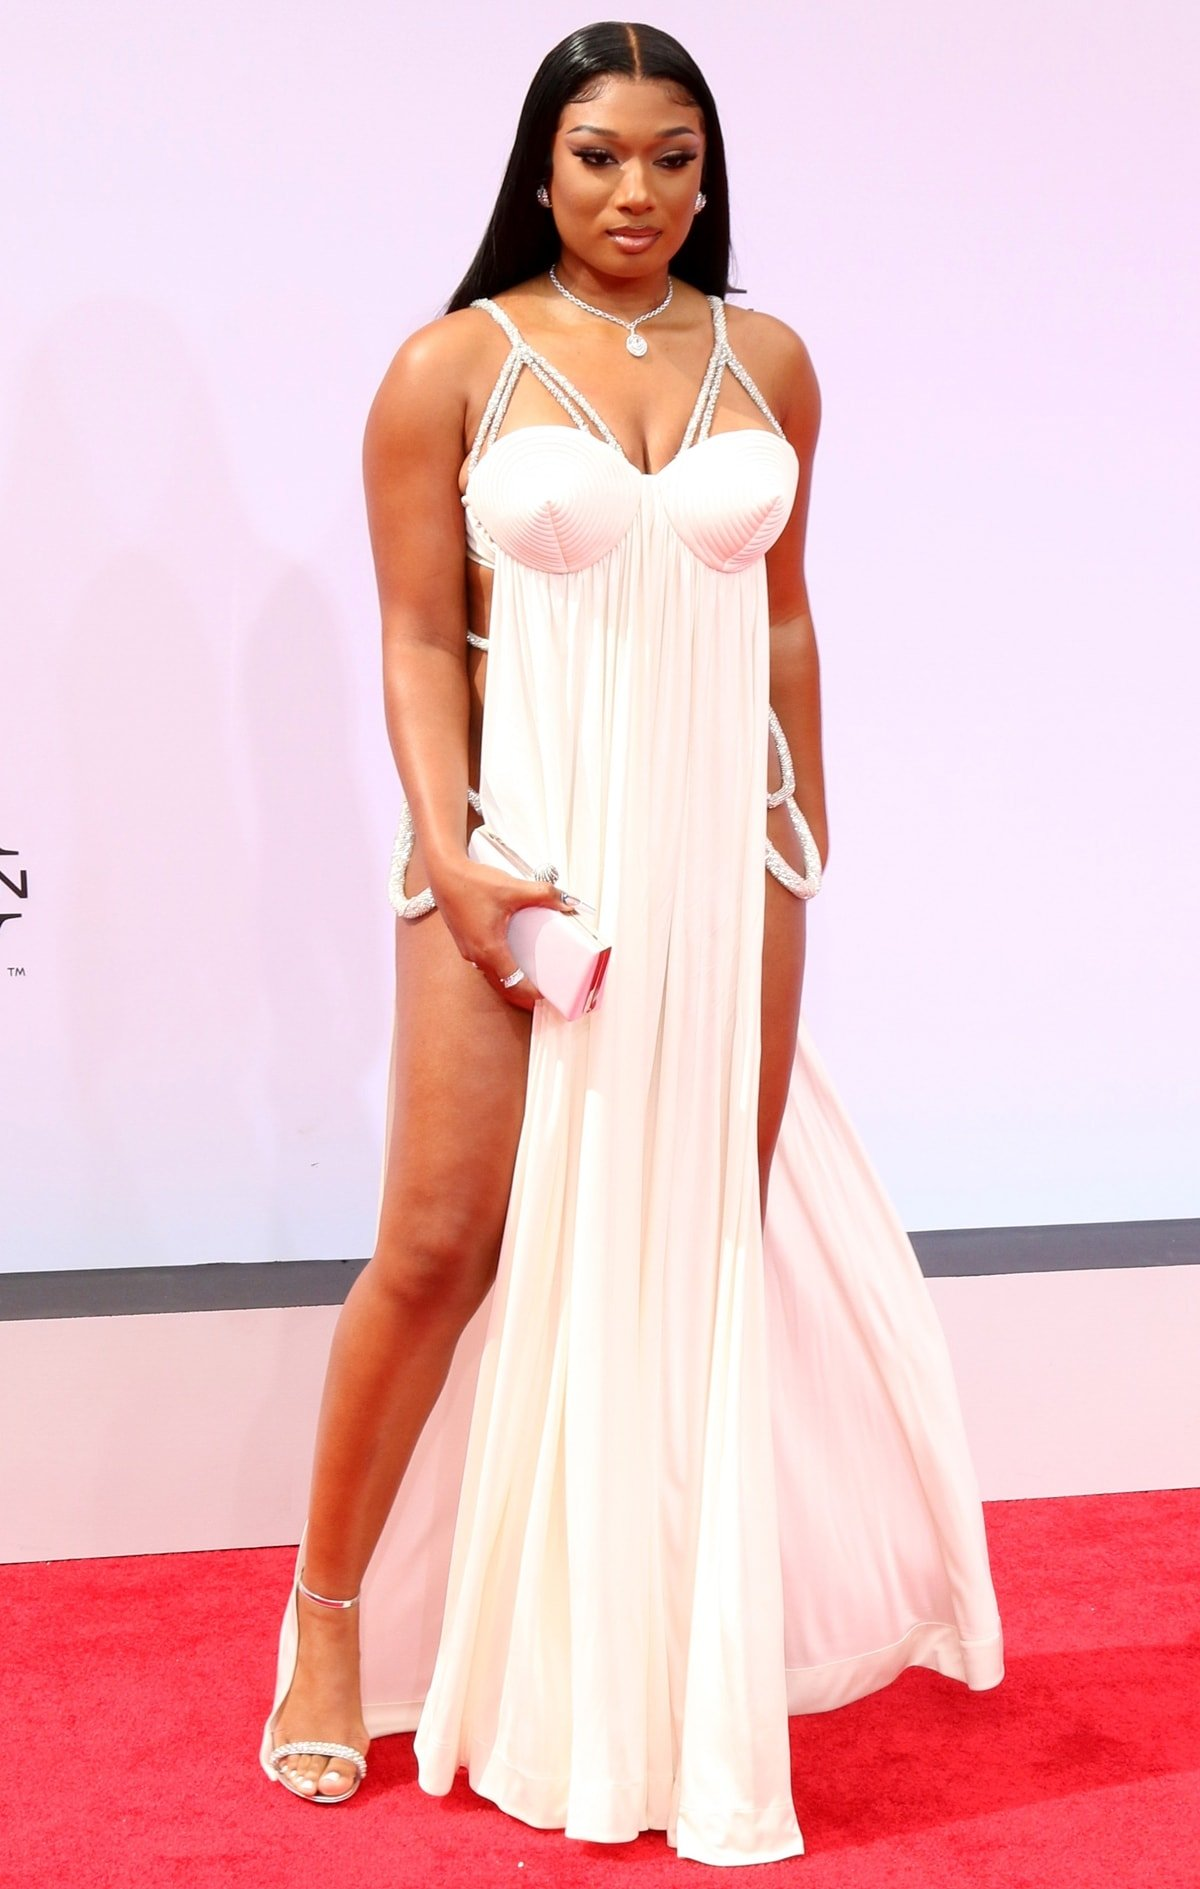 Megan Thee Stallion in a Jean Paul Gaultier dress and Bvlgari jewelry while carrying a Jimmy Choo bag at the 2021 BET Awards